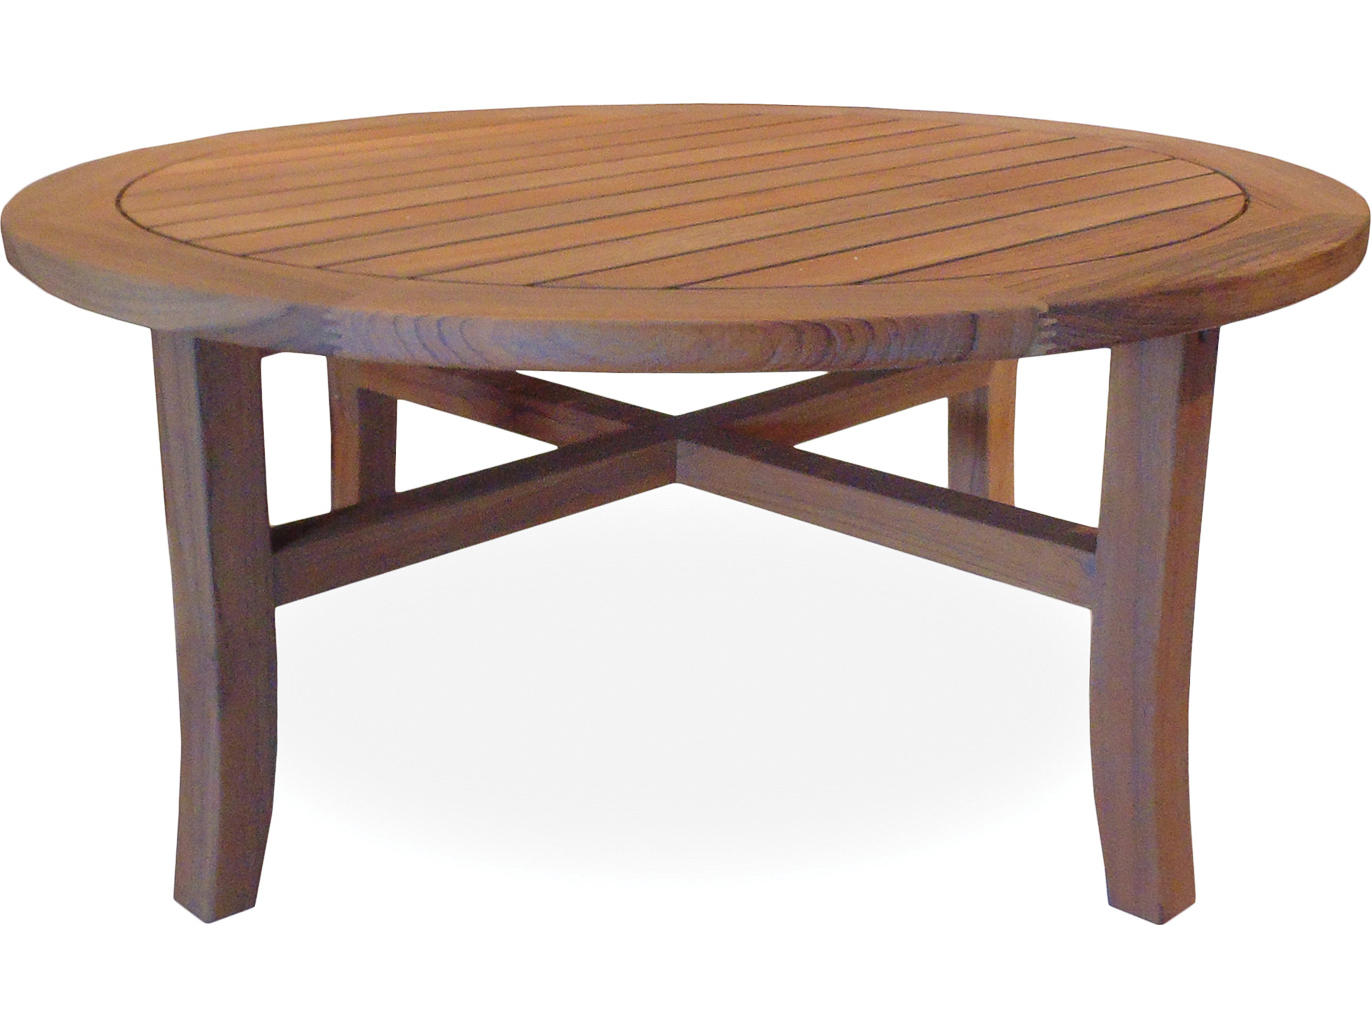 Lloyd flanders teak 403939 round tapered leg cocktail table for 40 inch round coffee table